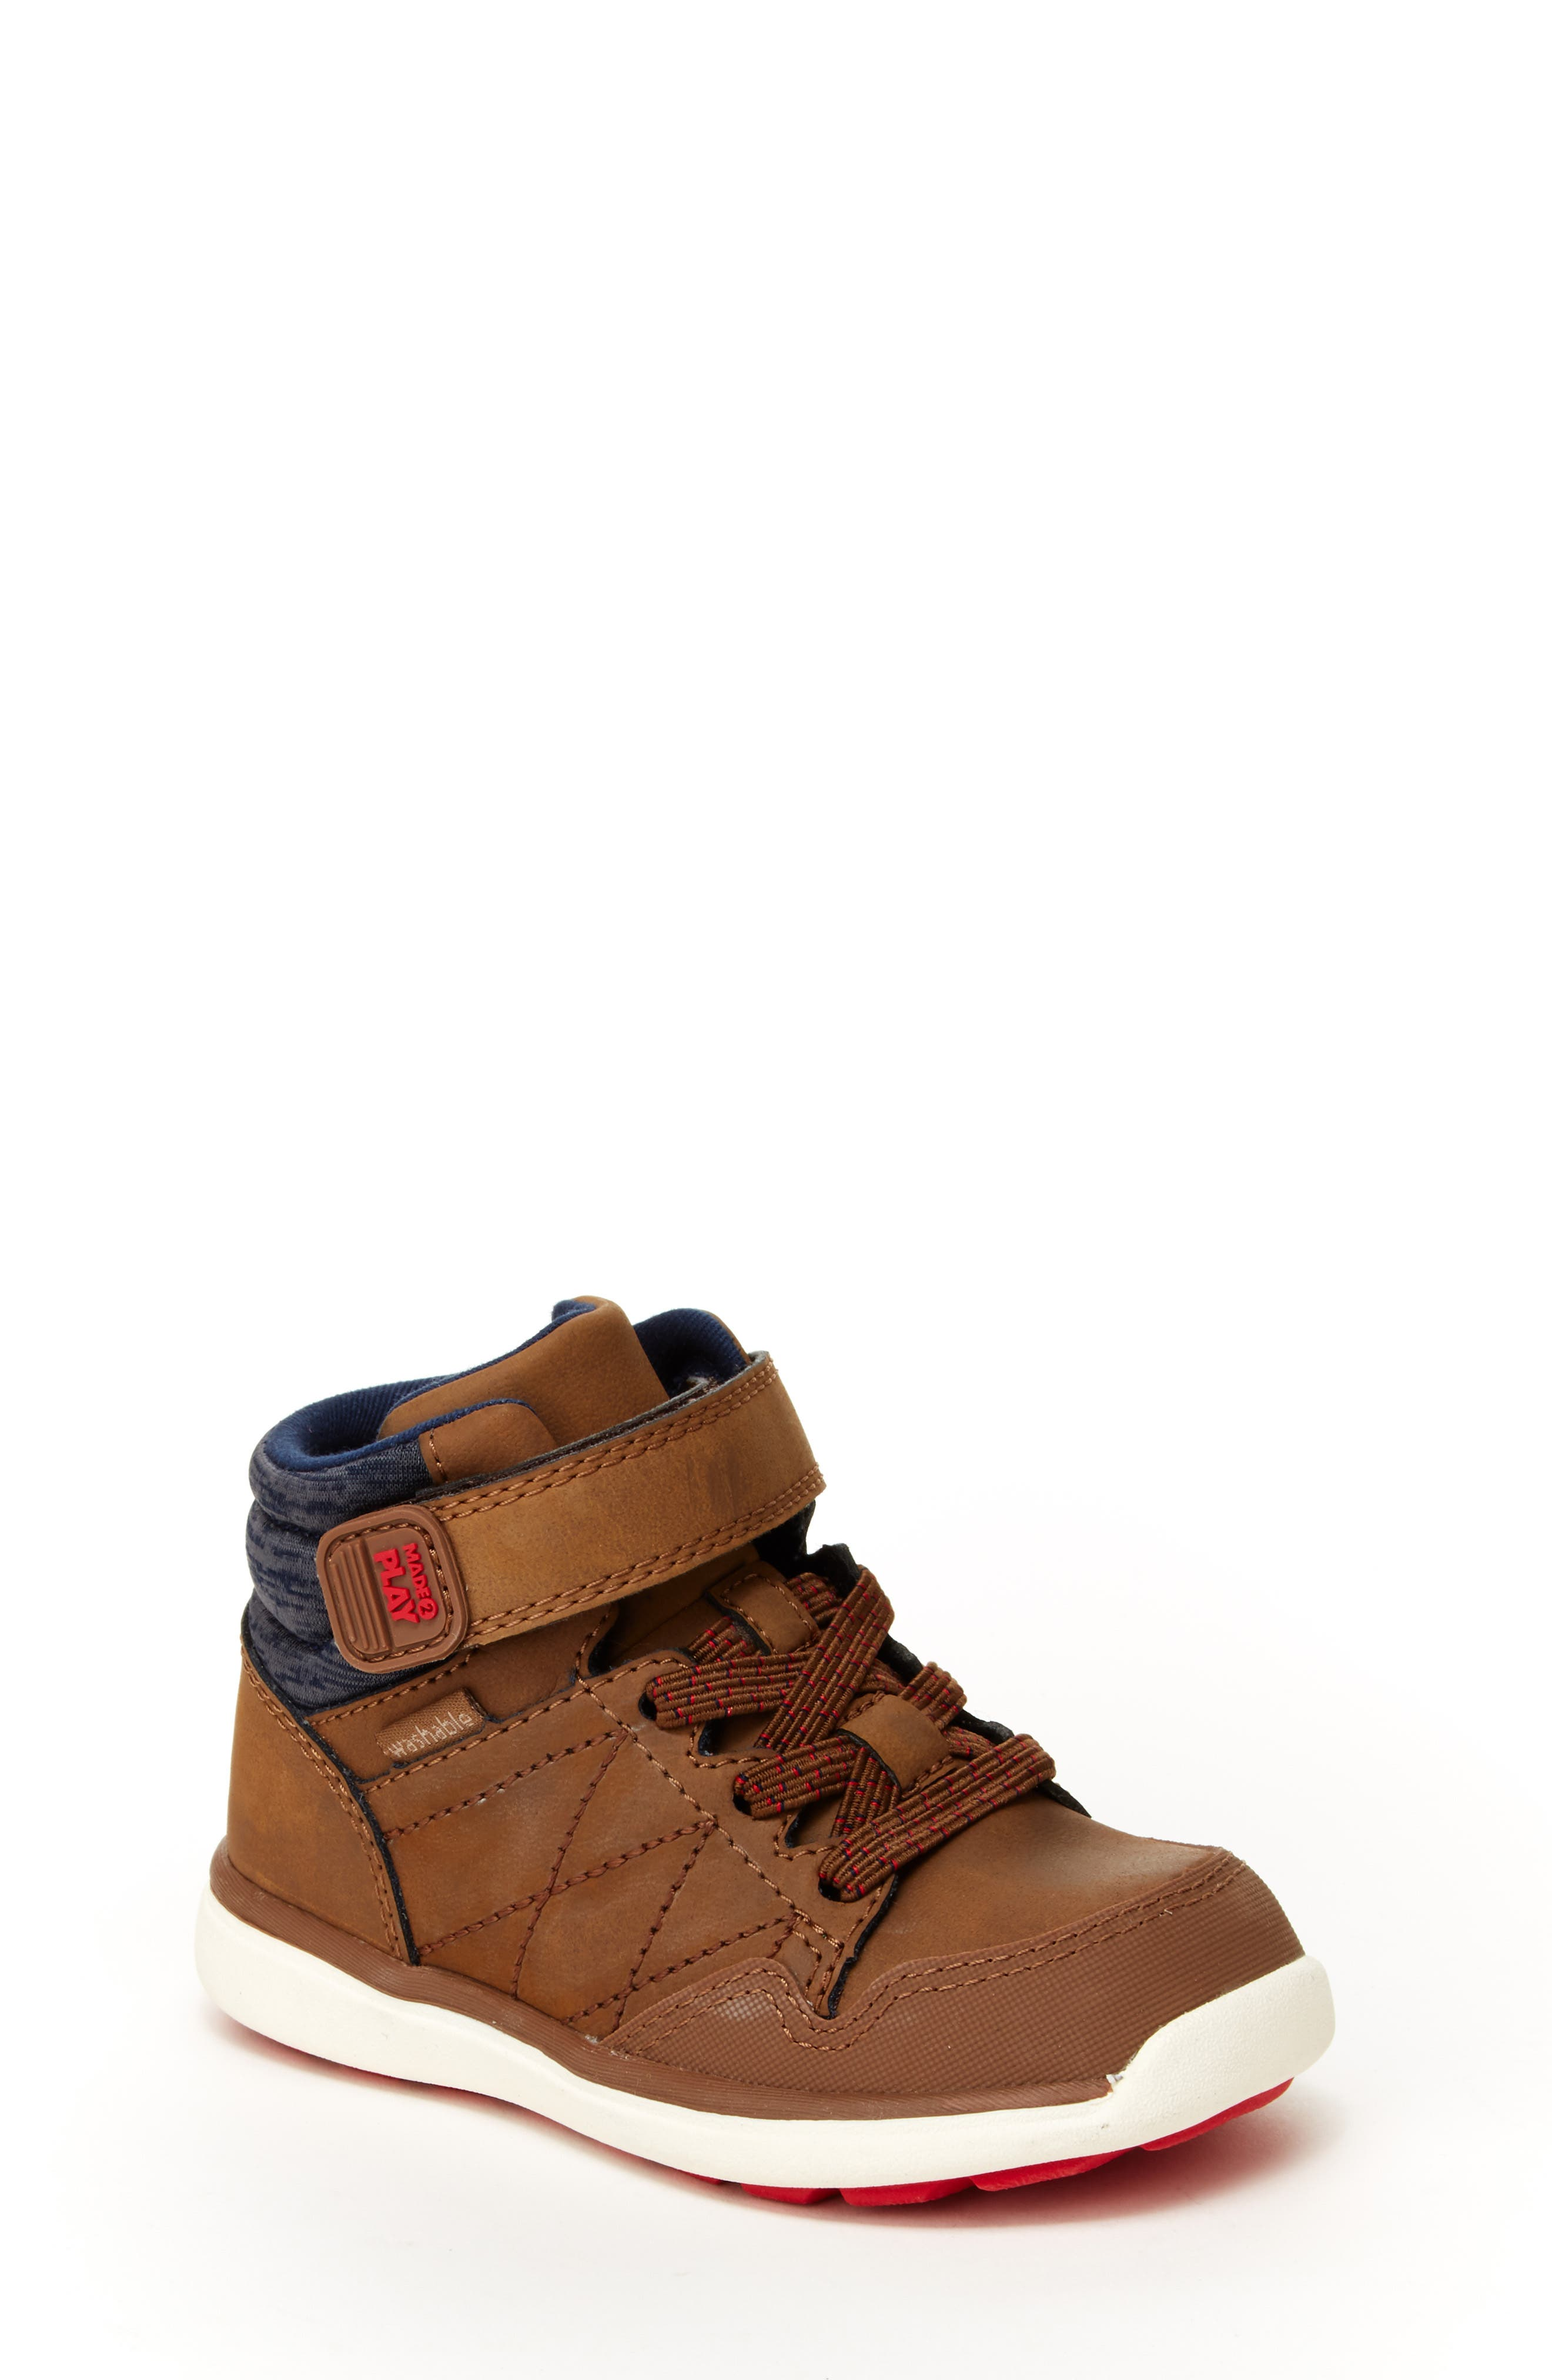 Saul Made2Play<sup>®</sup> Washable High Top Sneaker,                             Main thumbnail 1, color,                             BROWN